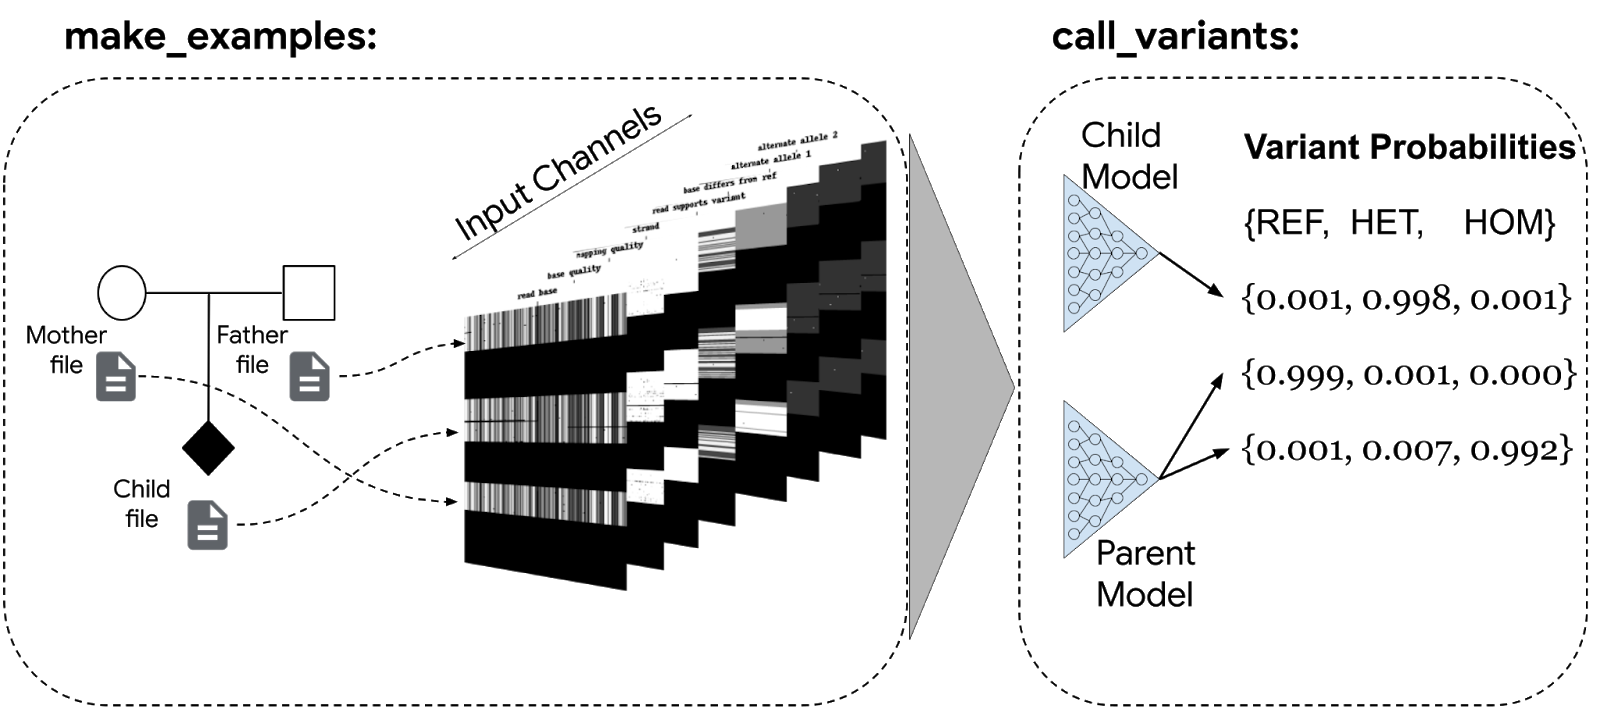 conceptual schematic of how trio files are used to create examples, which are then called by DeepTrio.